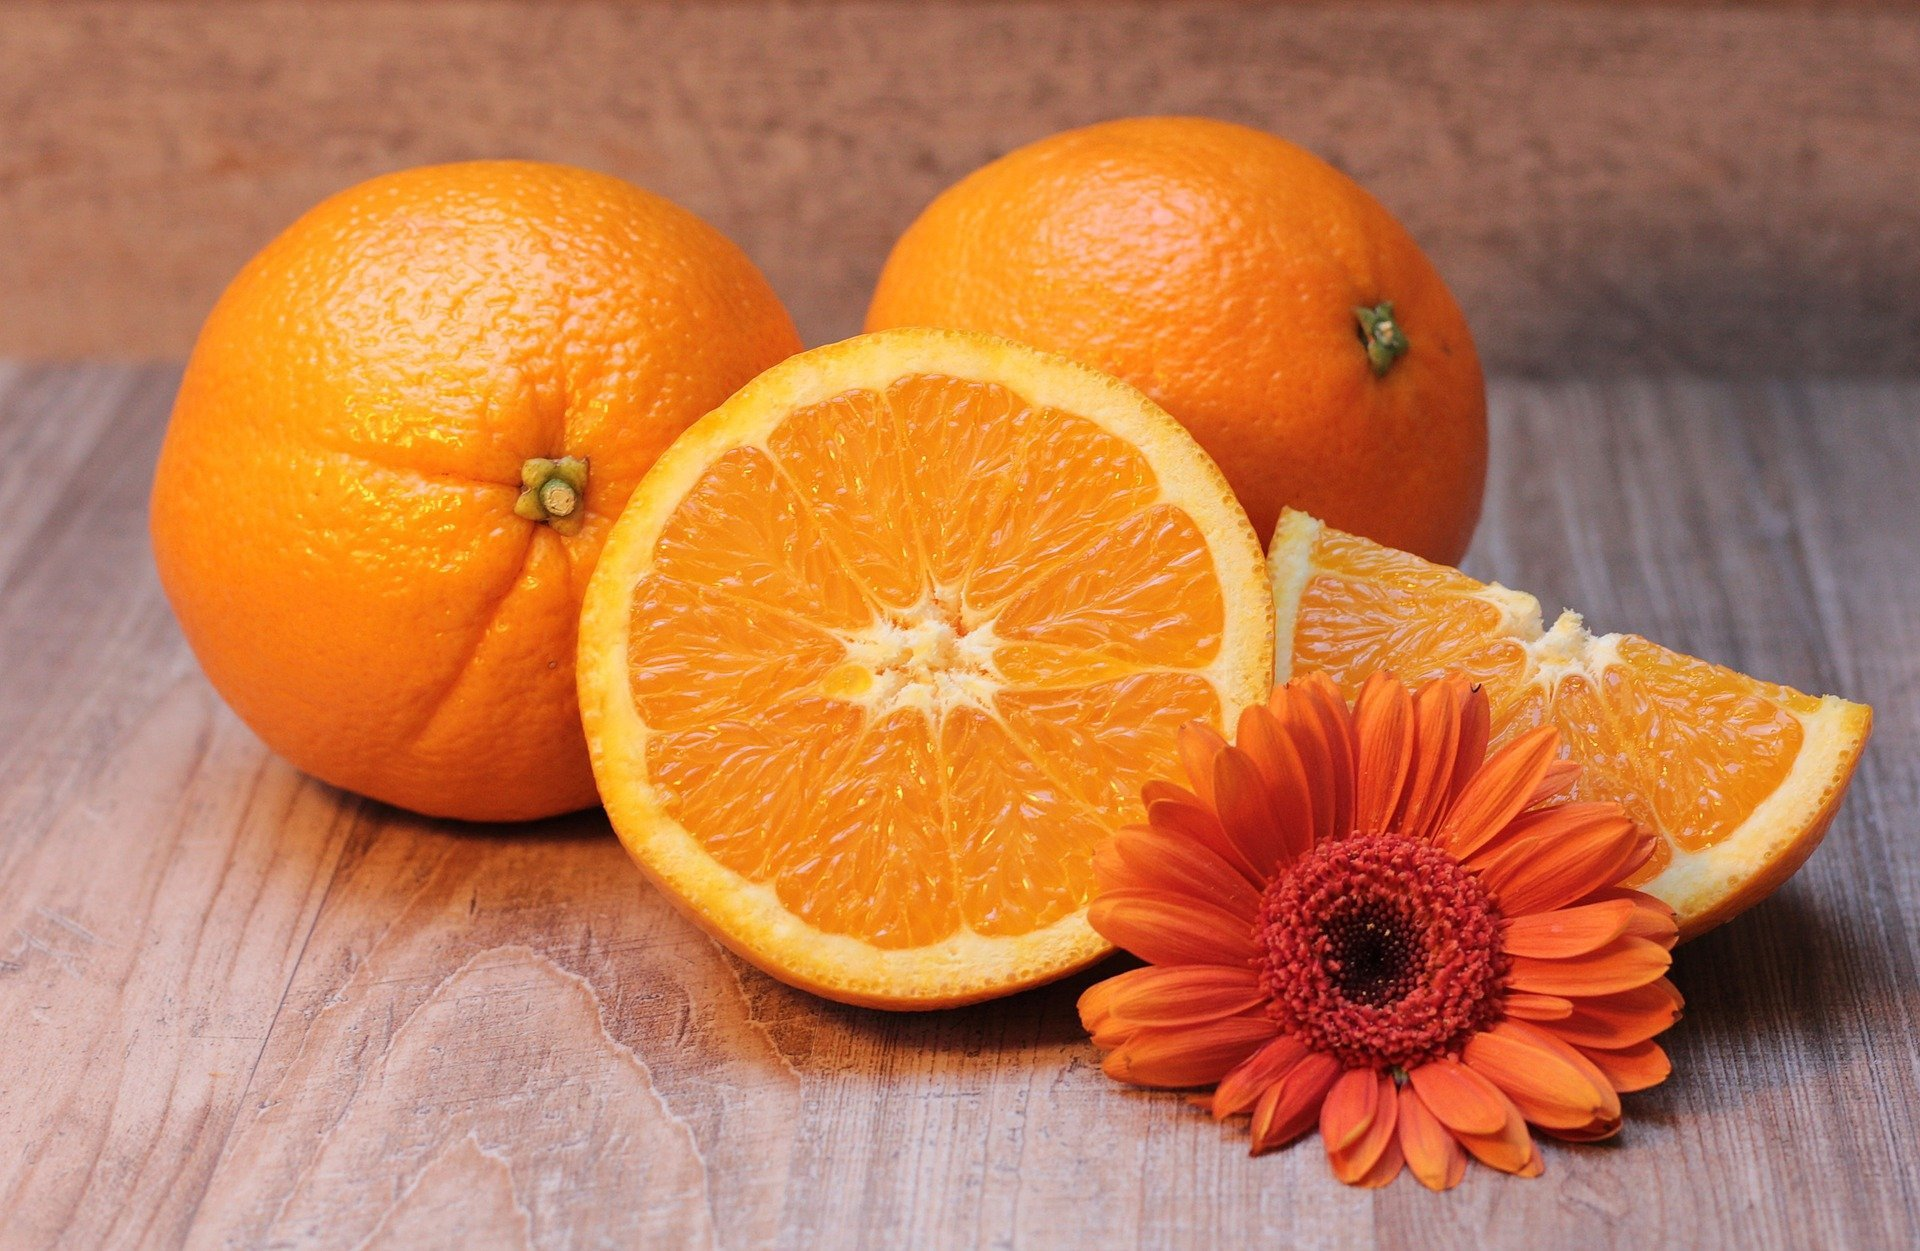 Improve Brain Health, These 3 Benefits of Oranges You Must Know - JPNN.com